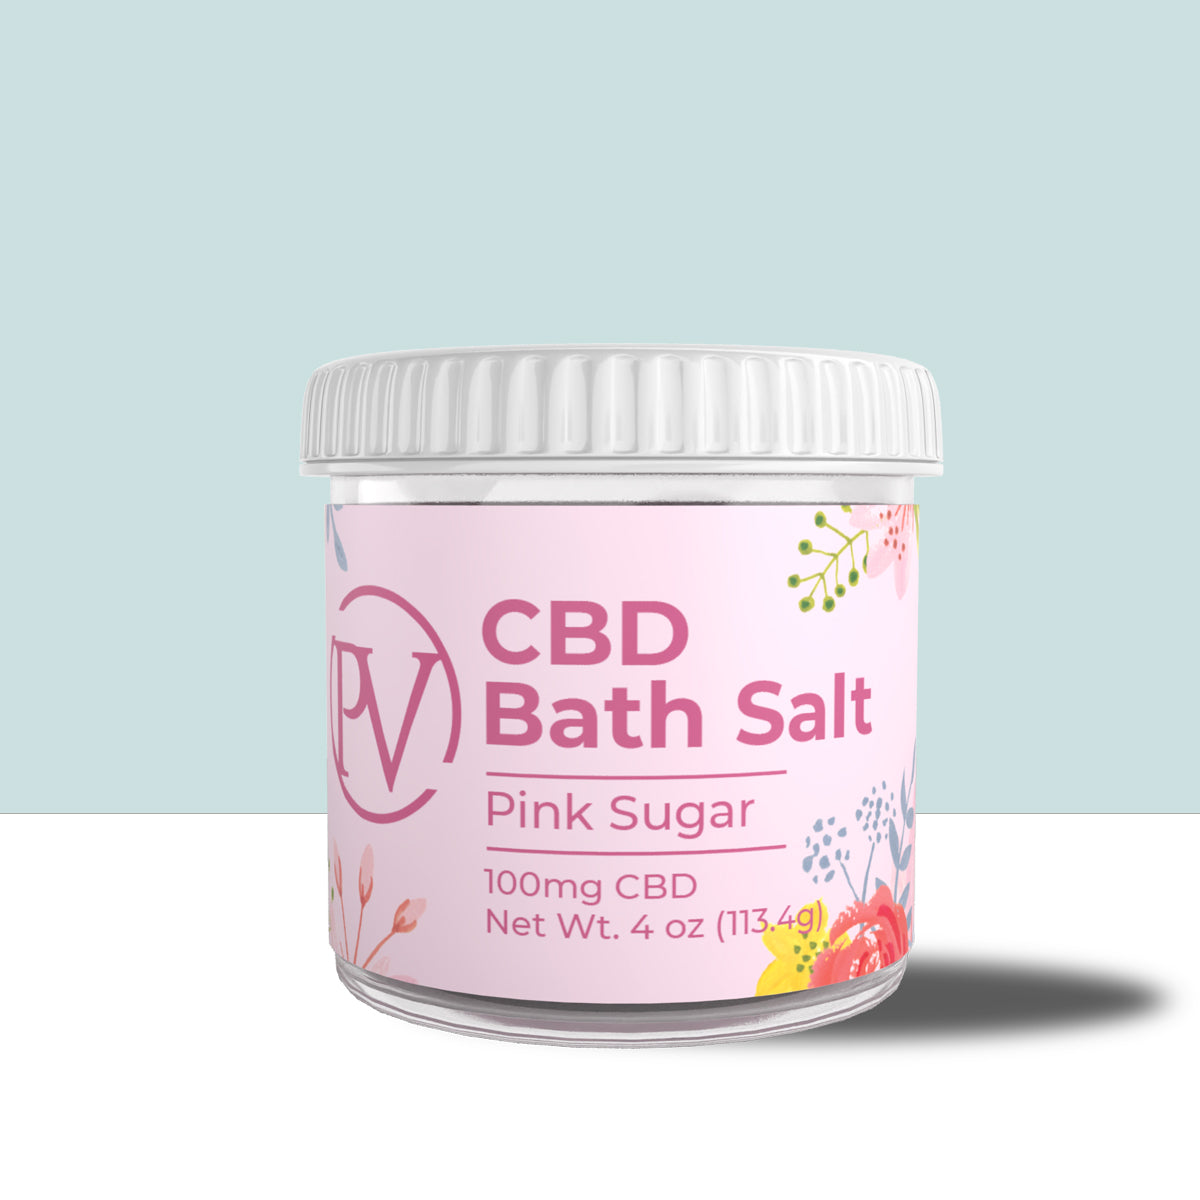 Pink Sugar Bath Salt 100mg